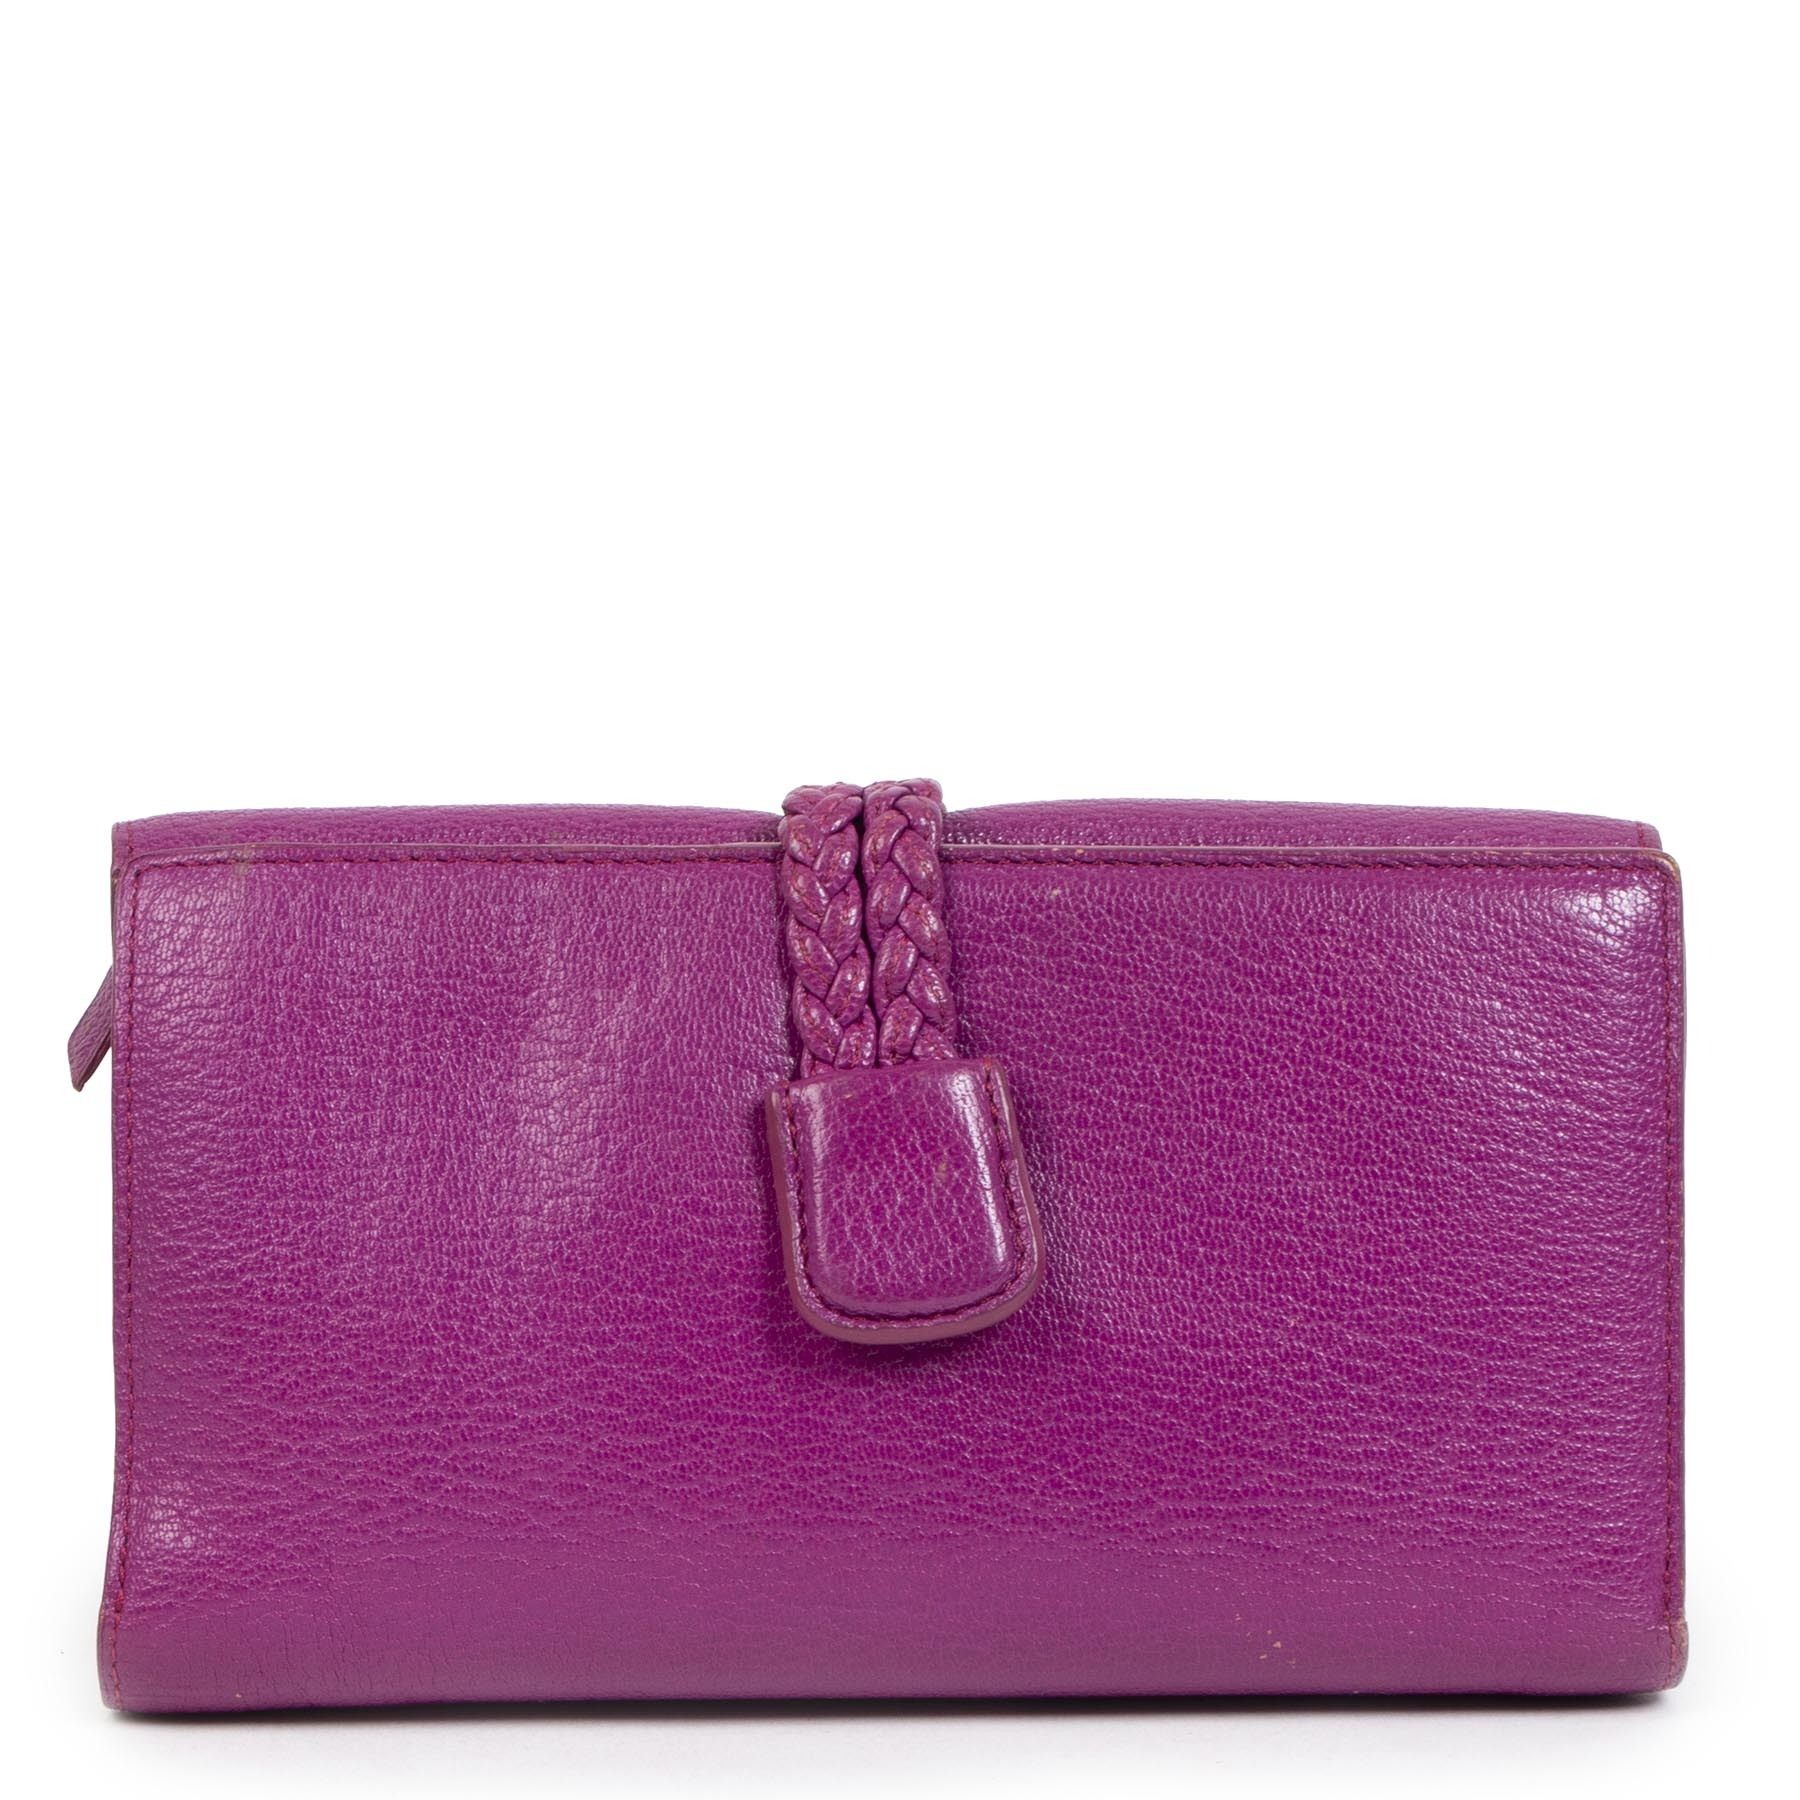 Authentic second-hand vintage Delvaux Fuchsia Wallet buy online webshop LabelLOV.